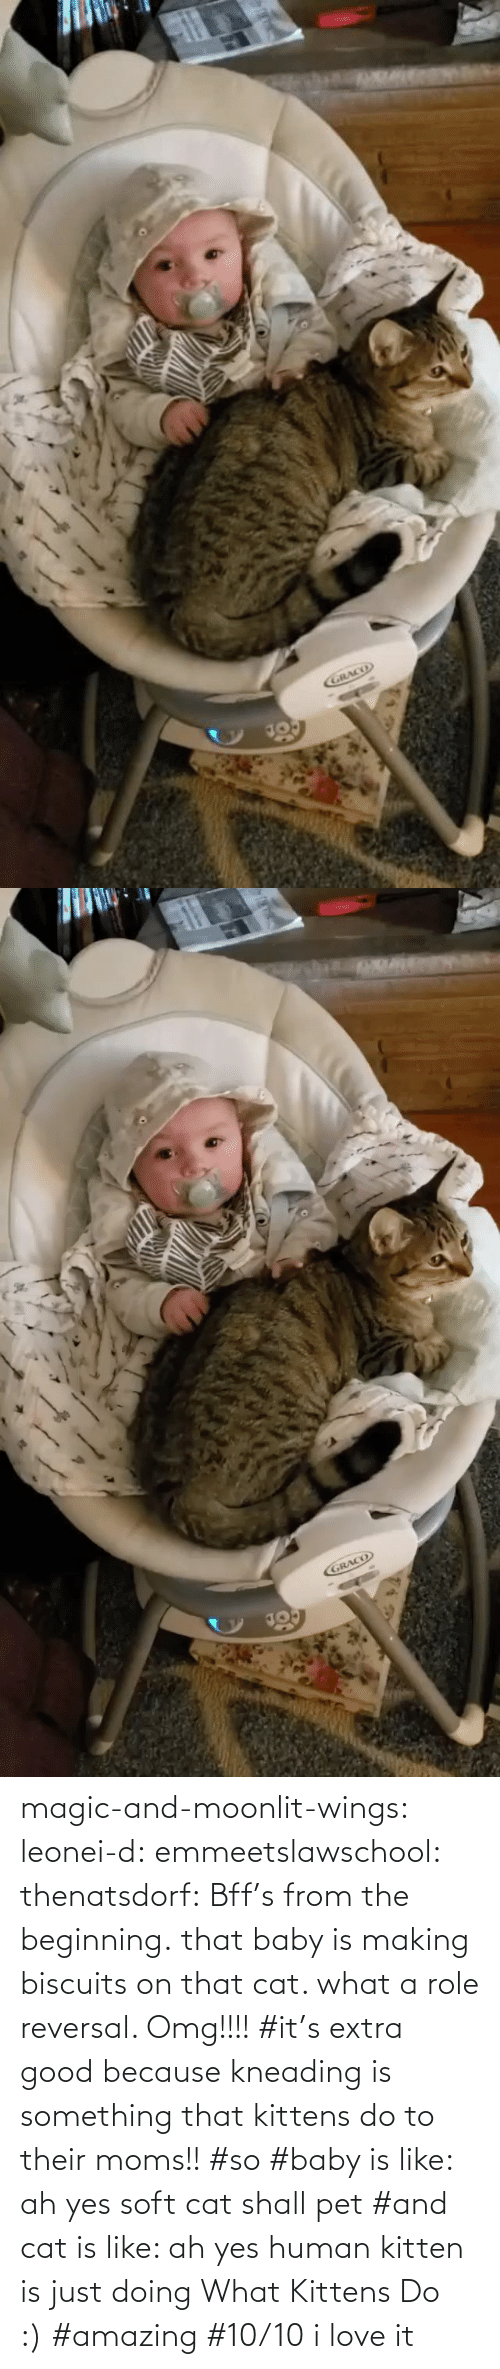 D: magic-and-moonlit-wings: leonei-d:  emmeetslawschool:  thenatsdorf: Bff's from the beginning. that baby is making biscuits on that cat. what a role reversal.    Omg!!!!     #it's extra good because kneading is something that kittens do to their moms!! #so #baby is like: ah yes soft cat shall pet #and cat is like: ah yes human kitten is just doing What Kittens Do :) #amazing #10/10 i love it